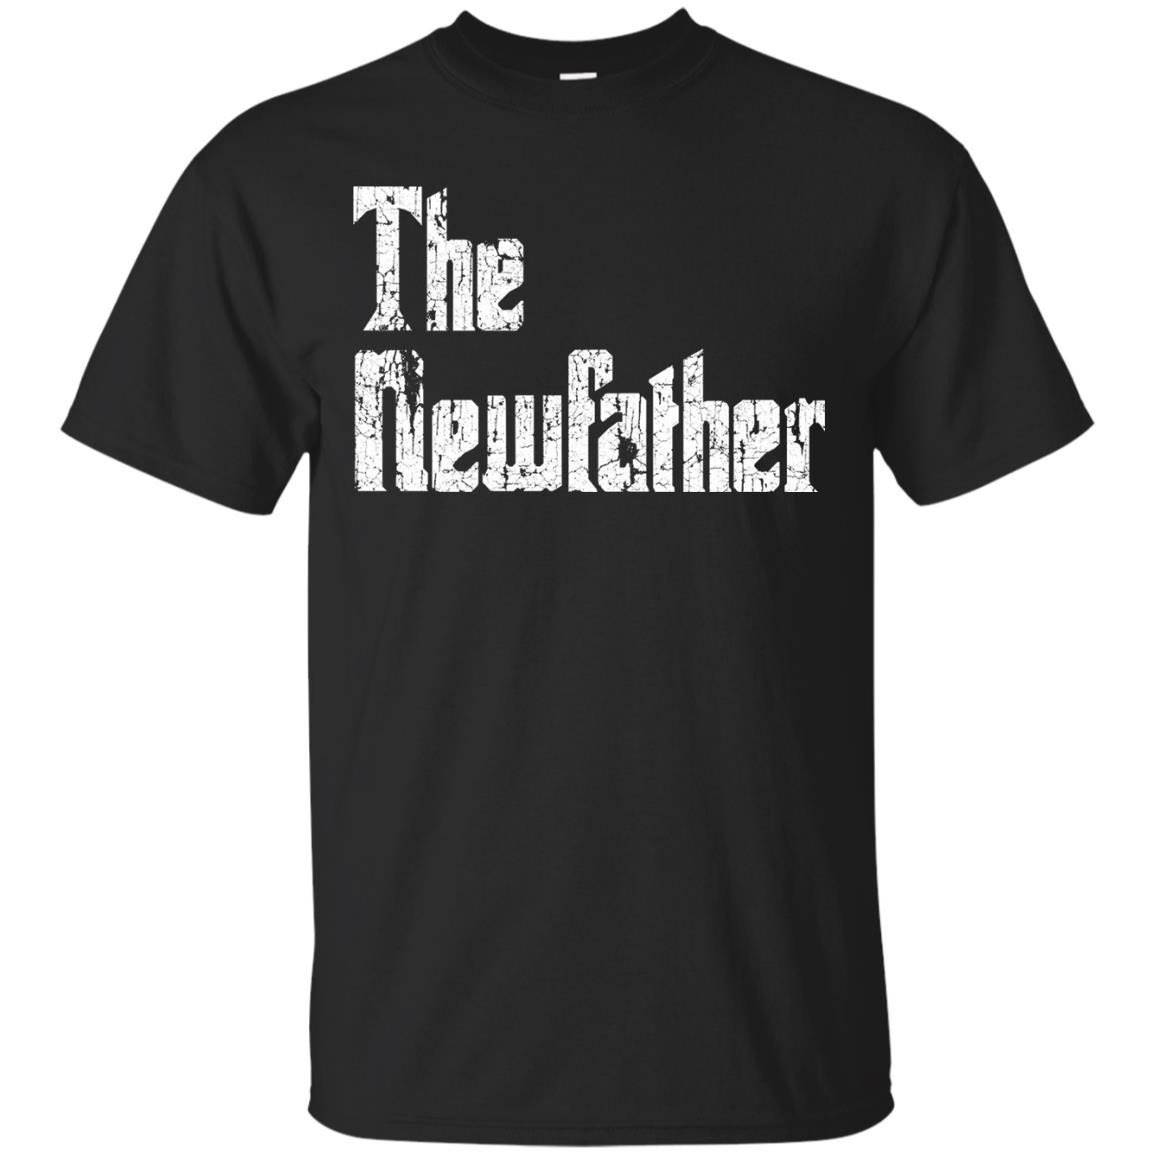 Funny Newfather T-Shirt for Dads to Be or New Dads